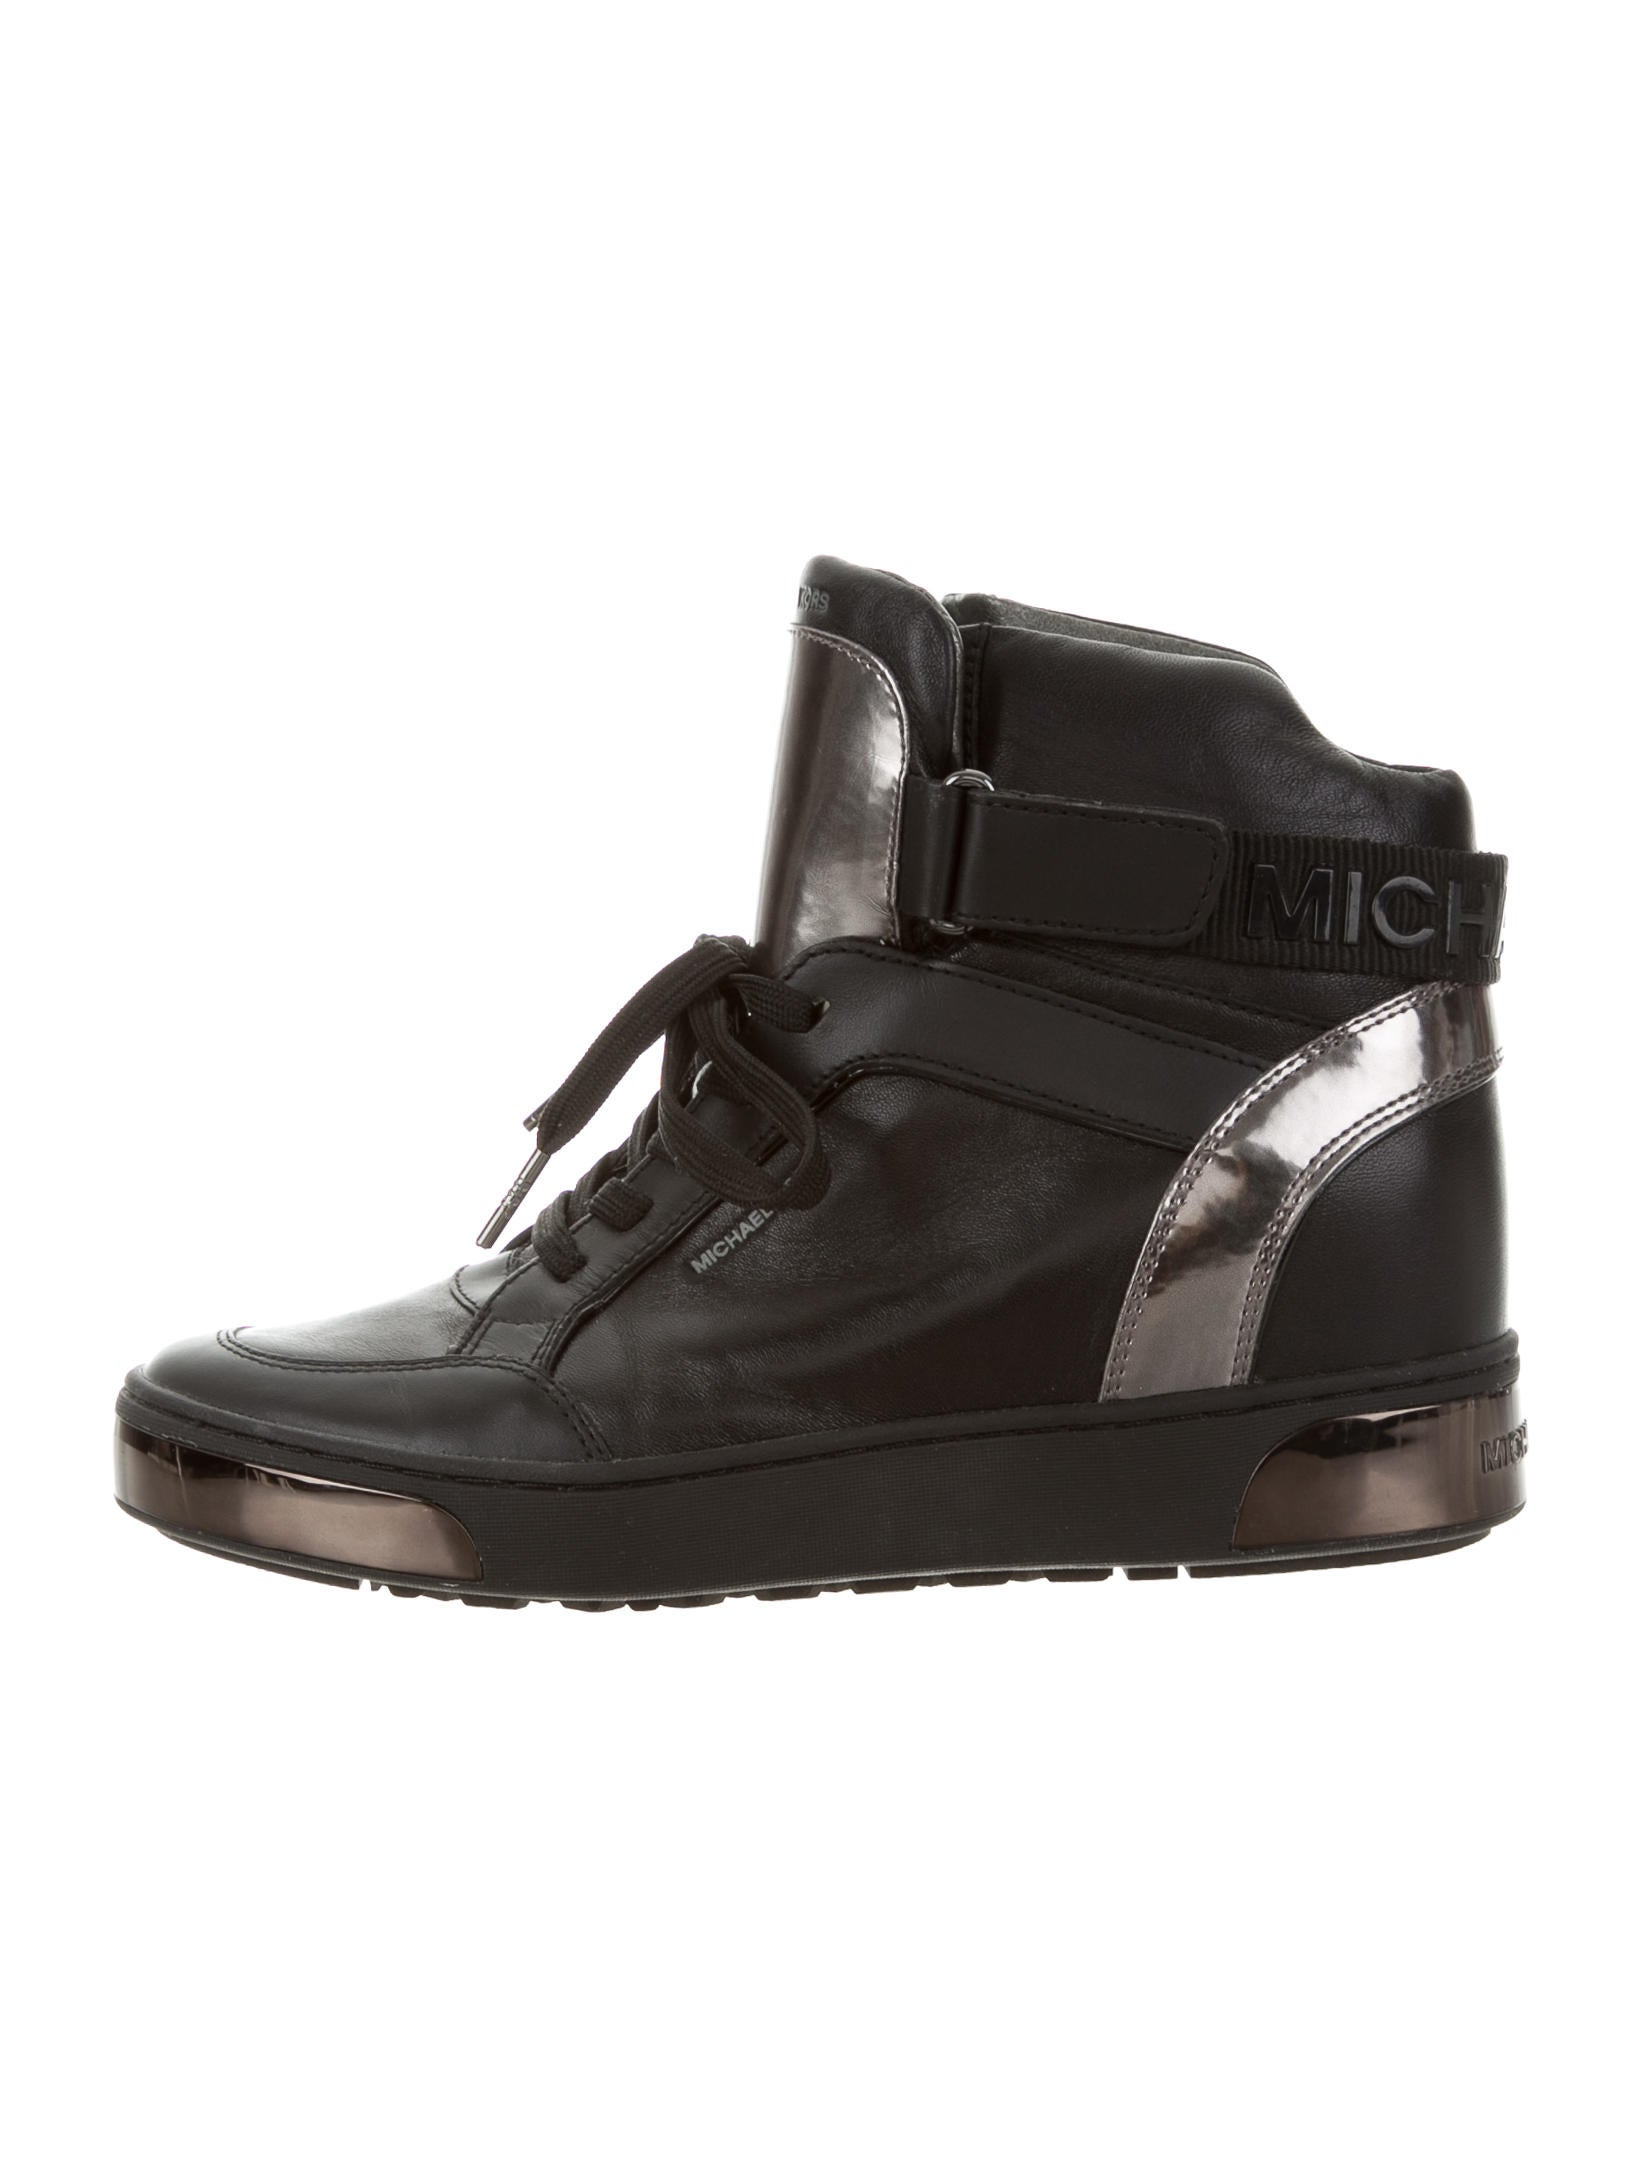 michael michael kors high top wedge sneakers shoes wm520922 the realreal. Black Bedroom Furniture Sets. Home Design Ideas